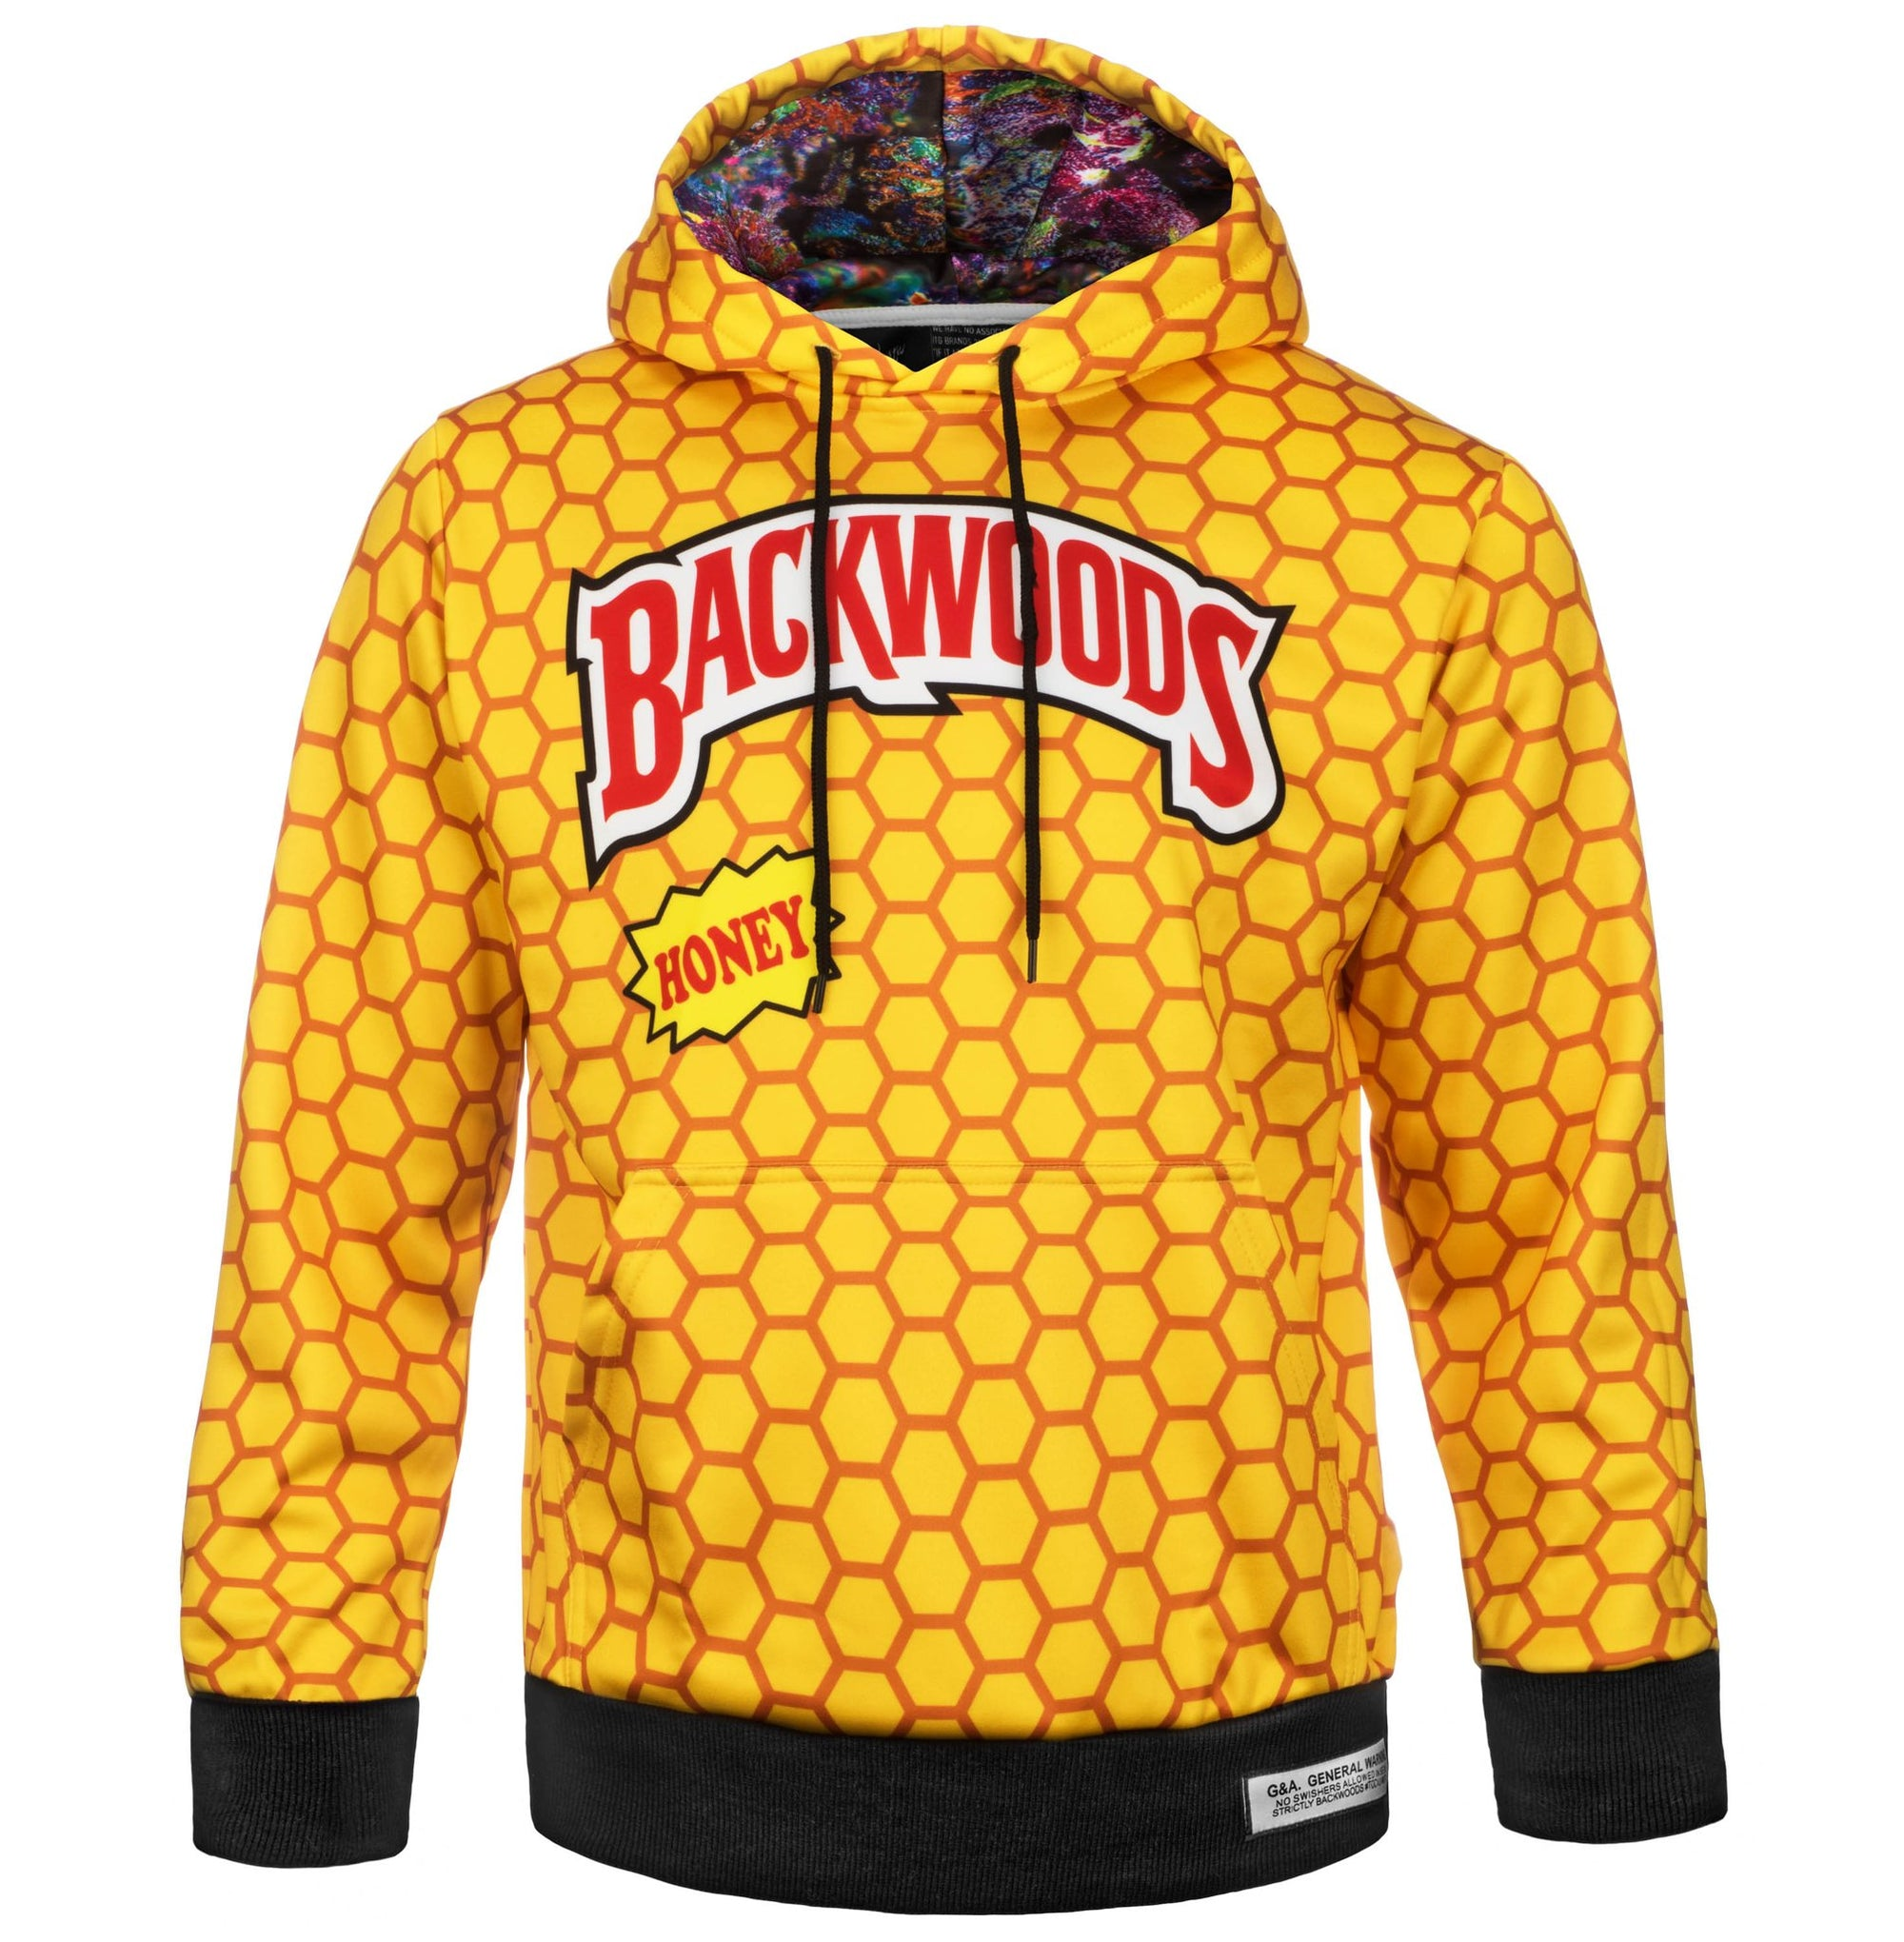 Honey Backwoods Hoodie